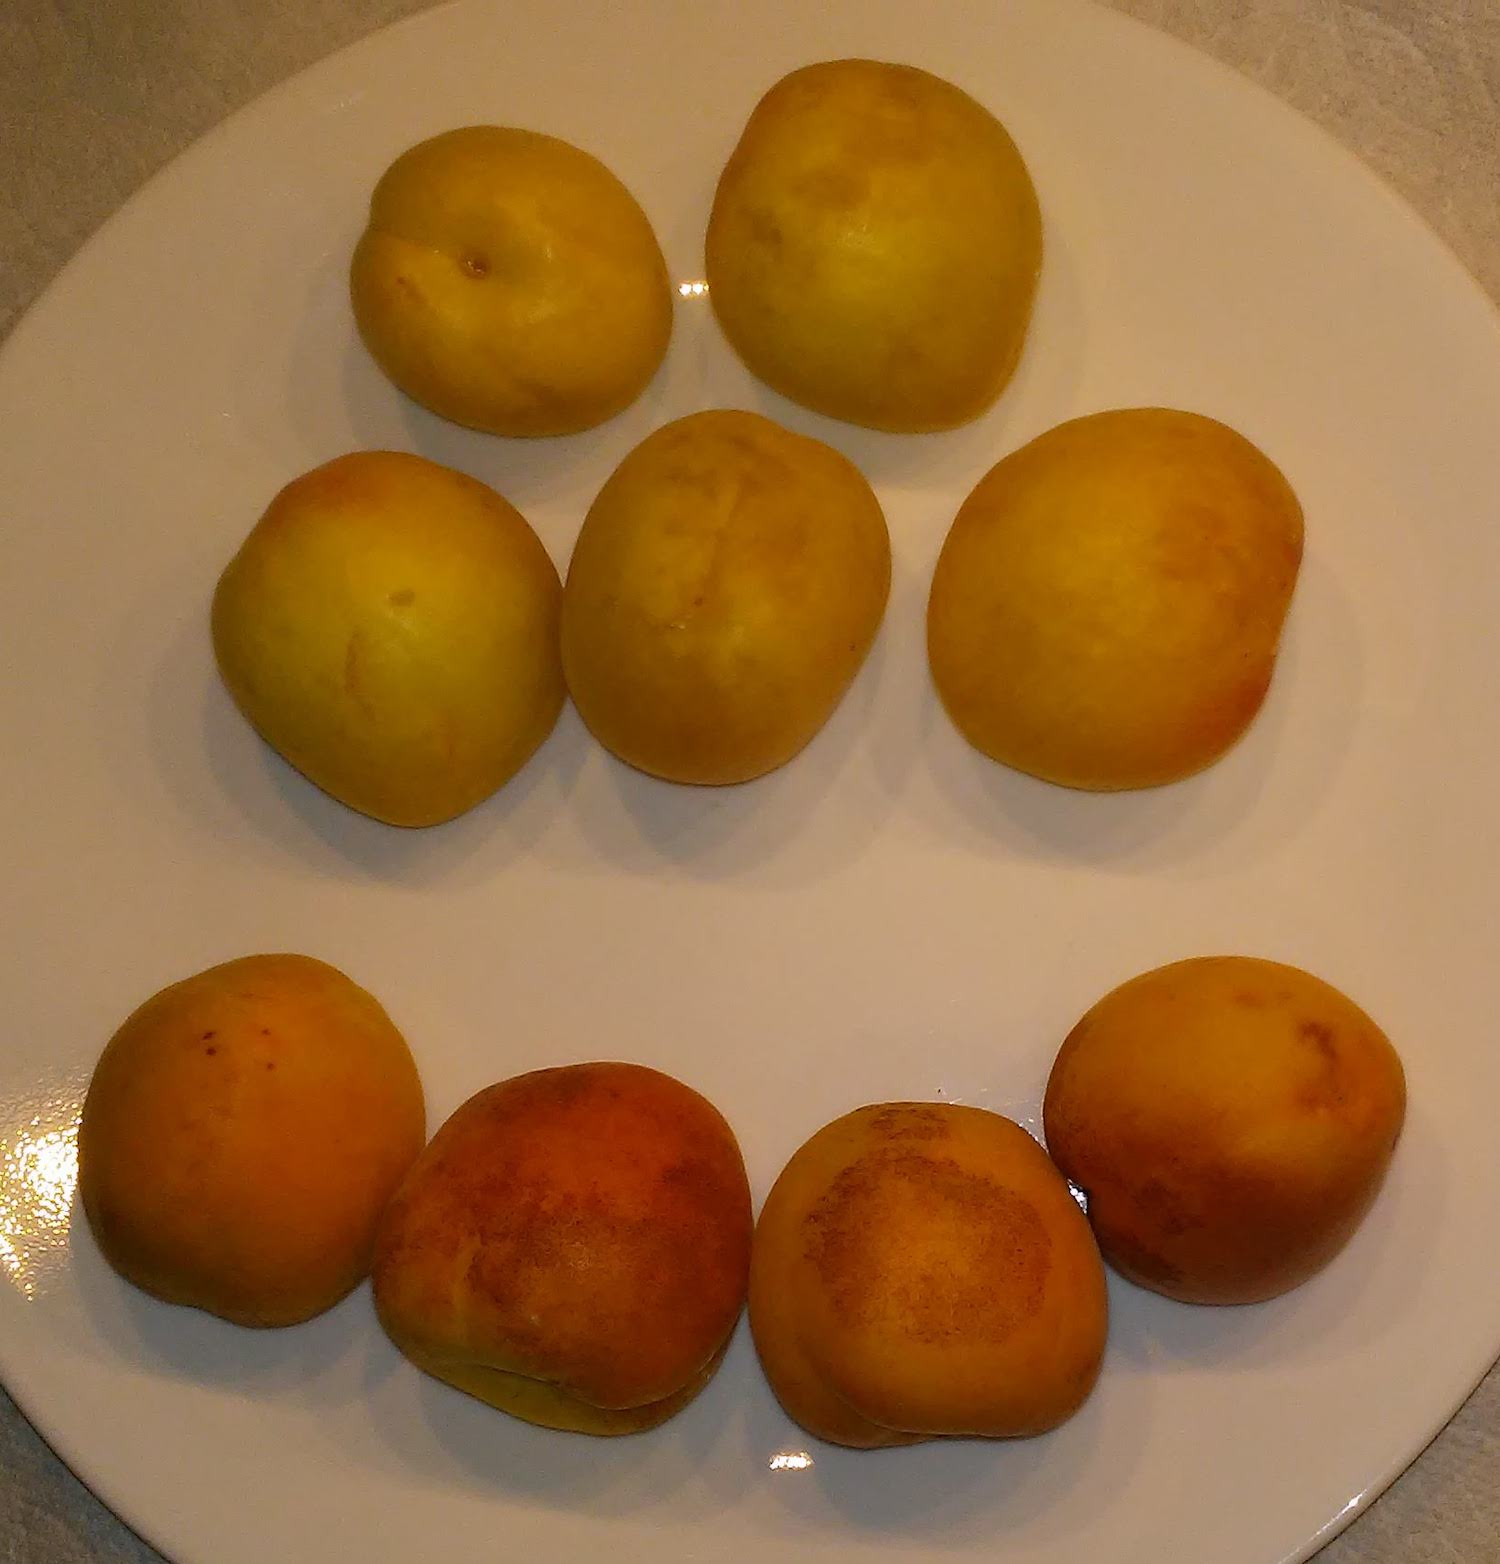 Apricots_Afghanistan_Sparks-Mammoth_2019-06-23